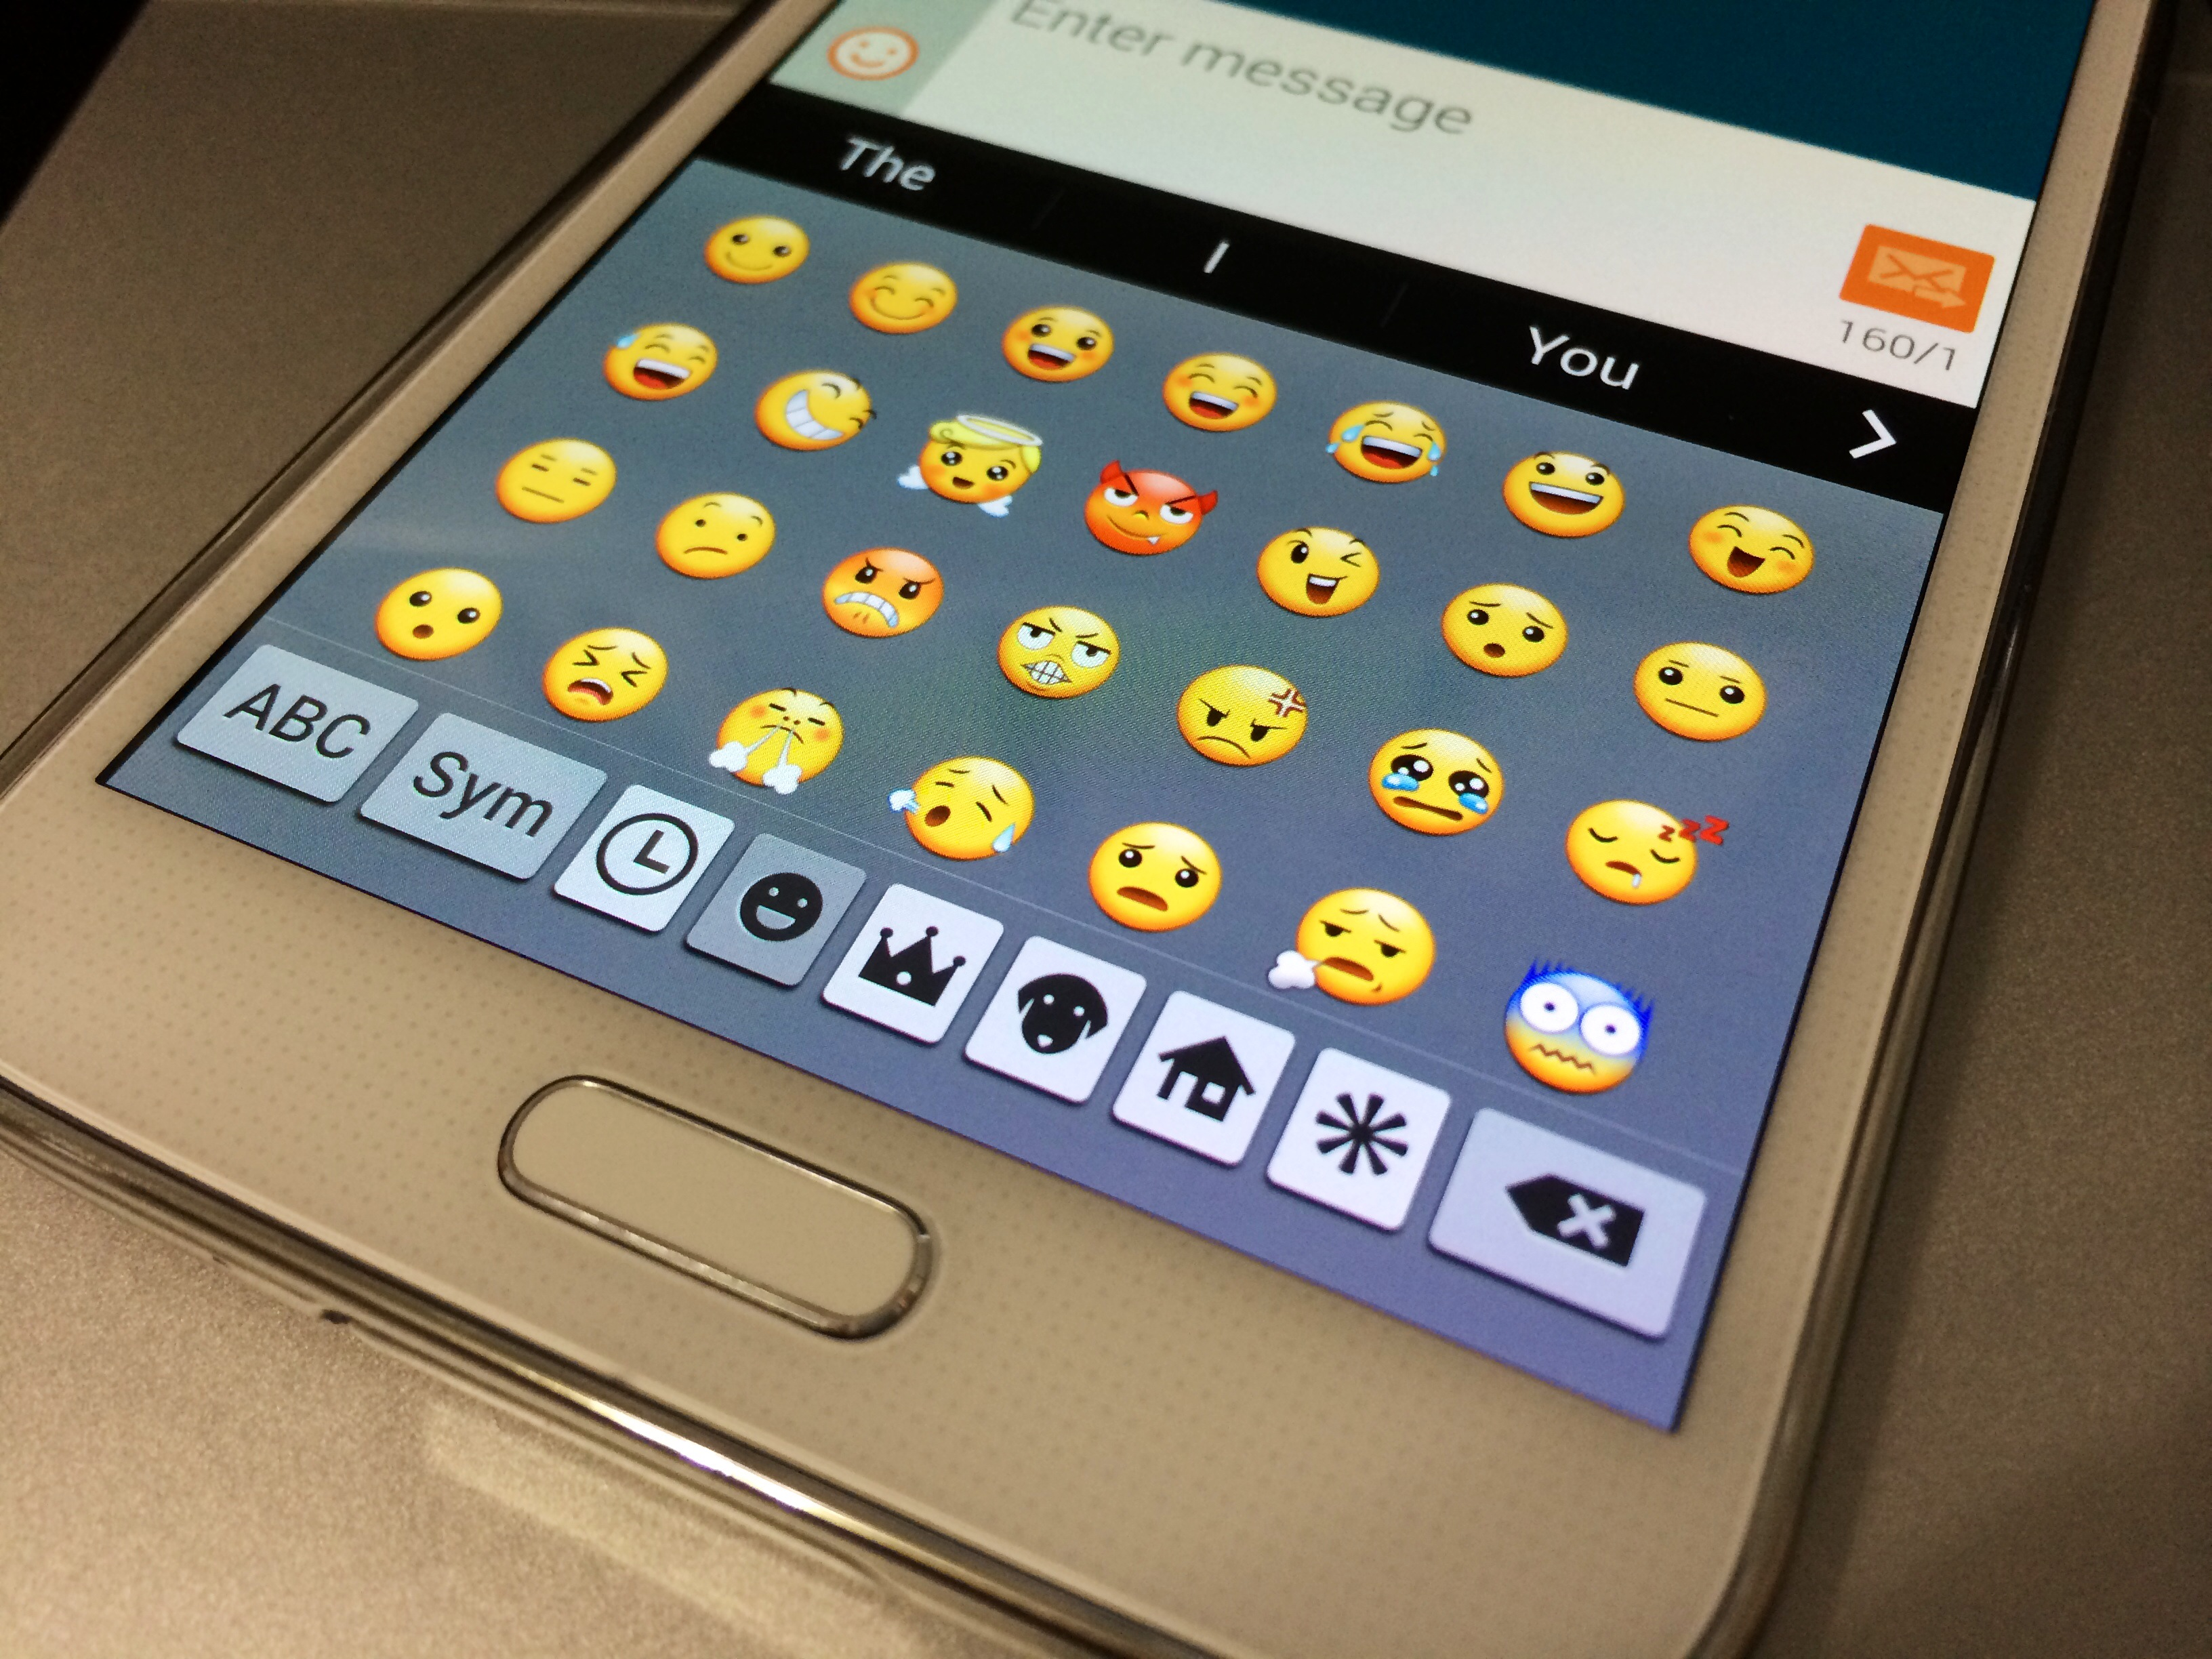 How to use emoji on the galaxy s5 galaxy note 3 galaxy s4 heres how to use the emoji galaxy s5 keyboard which also lets you use emoji biocorpaavc Images